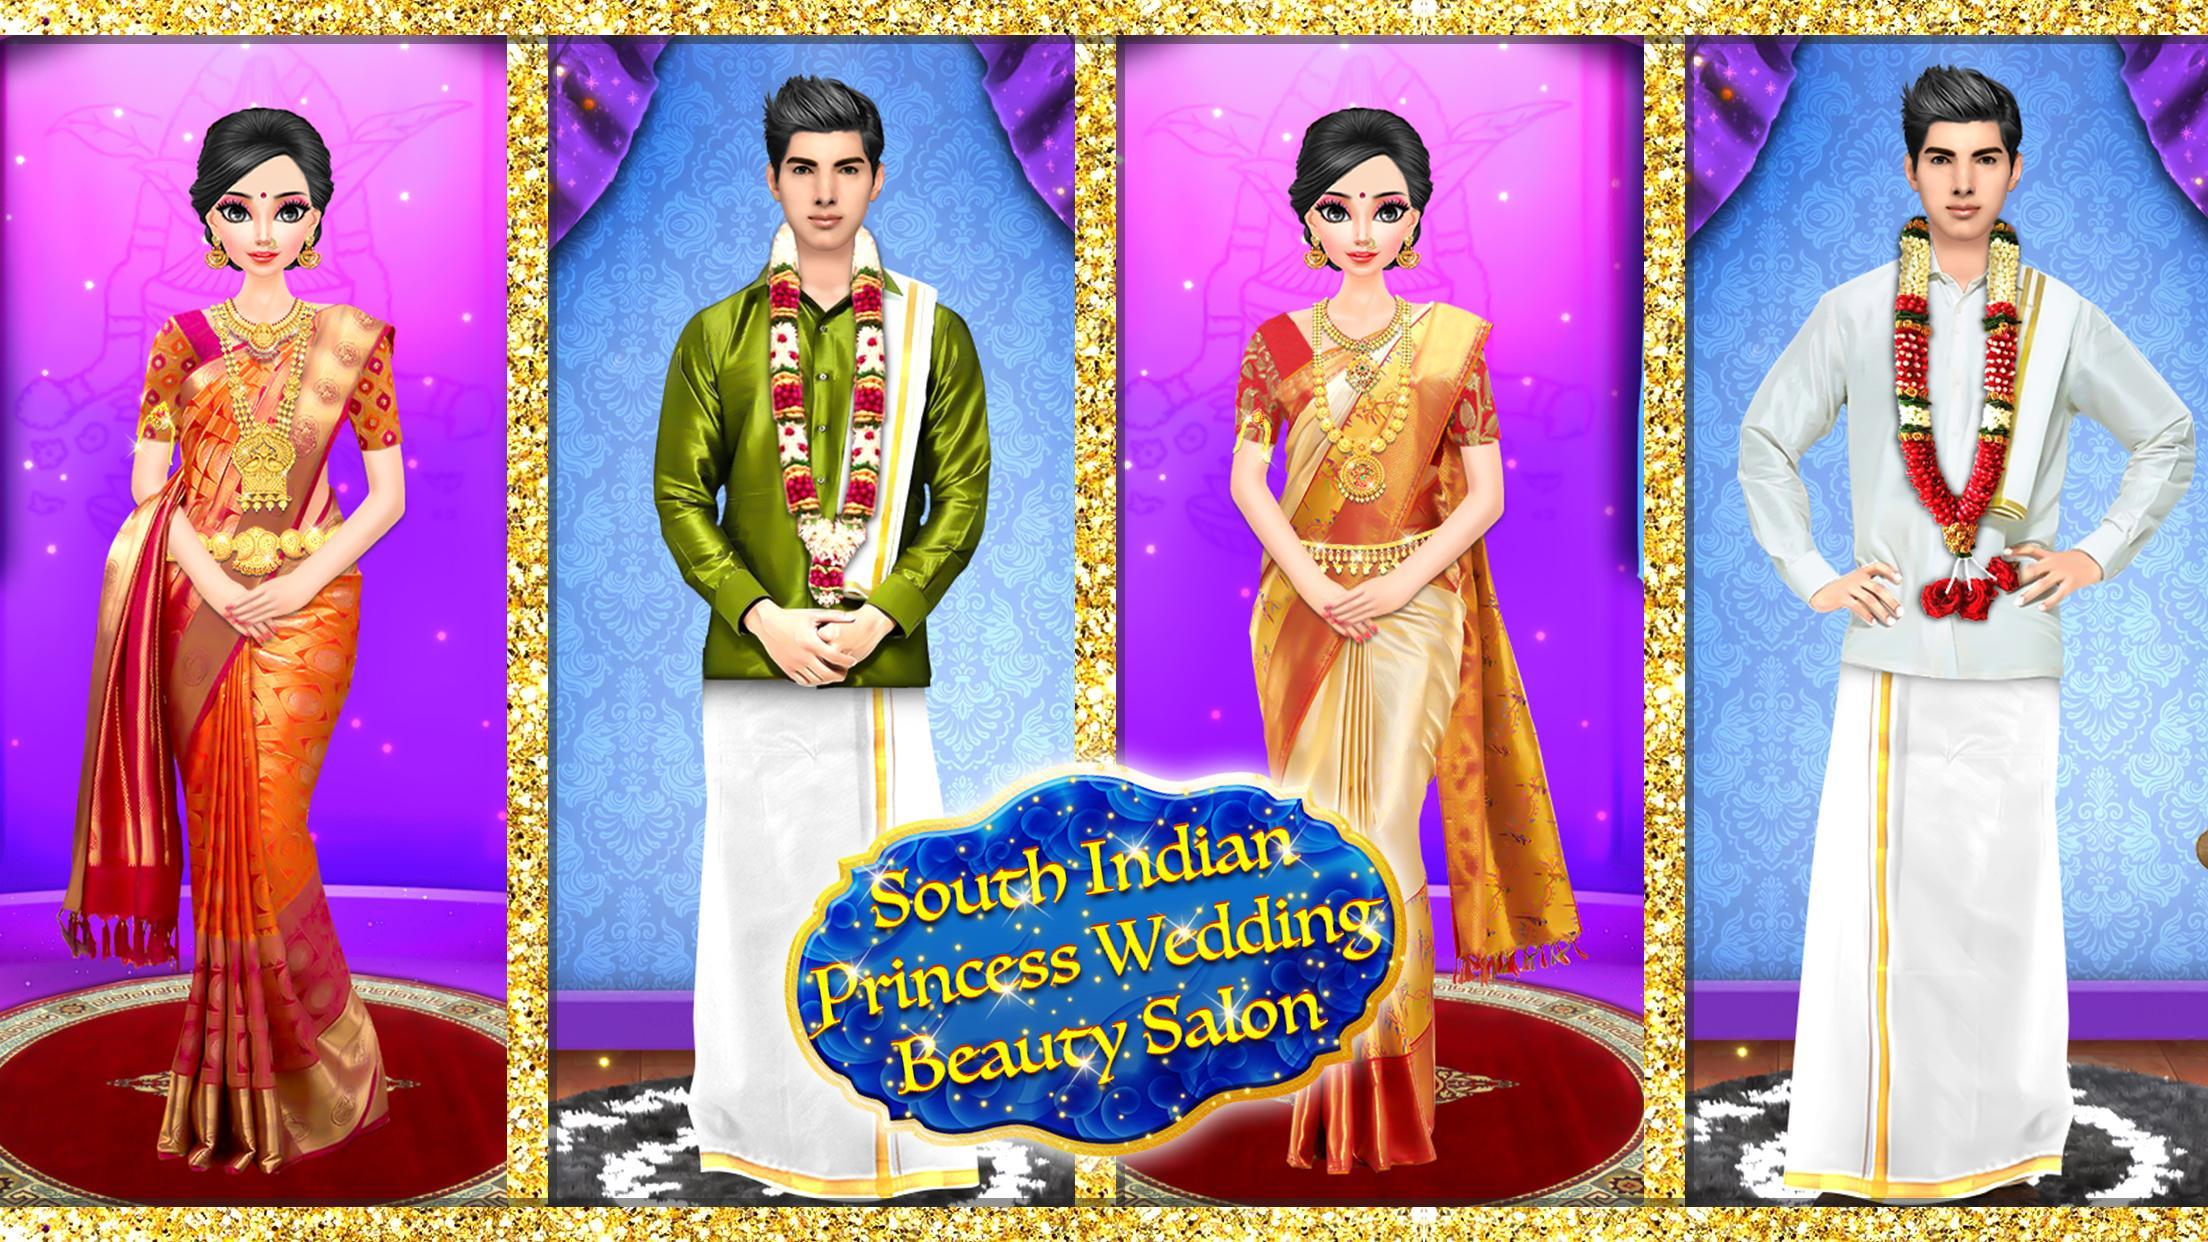 South Indian Bride Wedding Salon For Android Apk Download